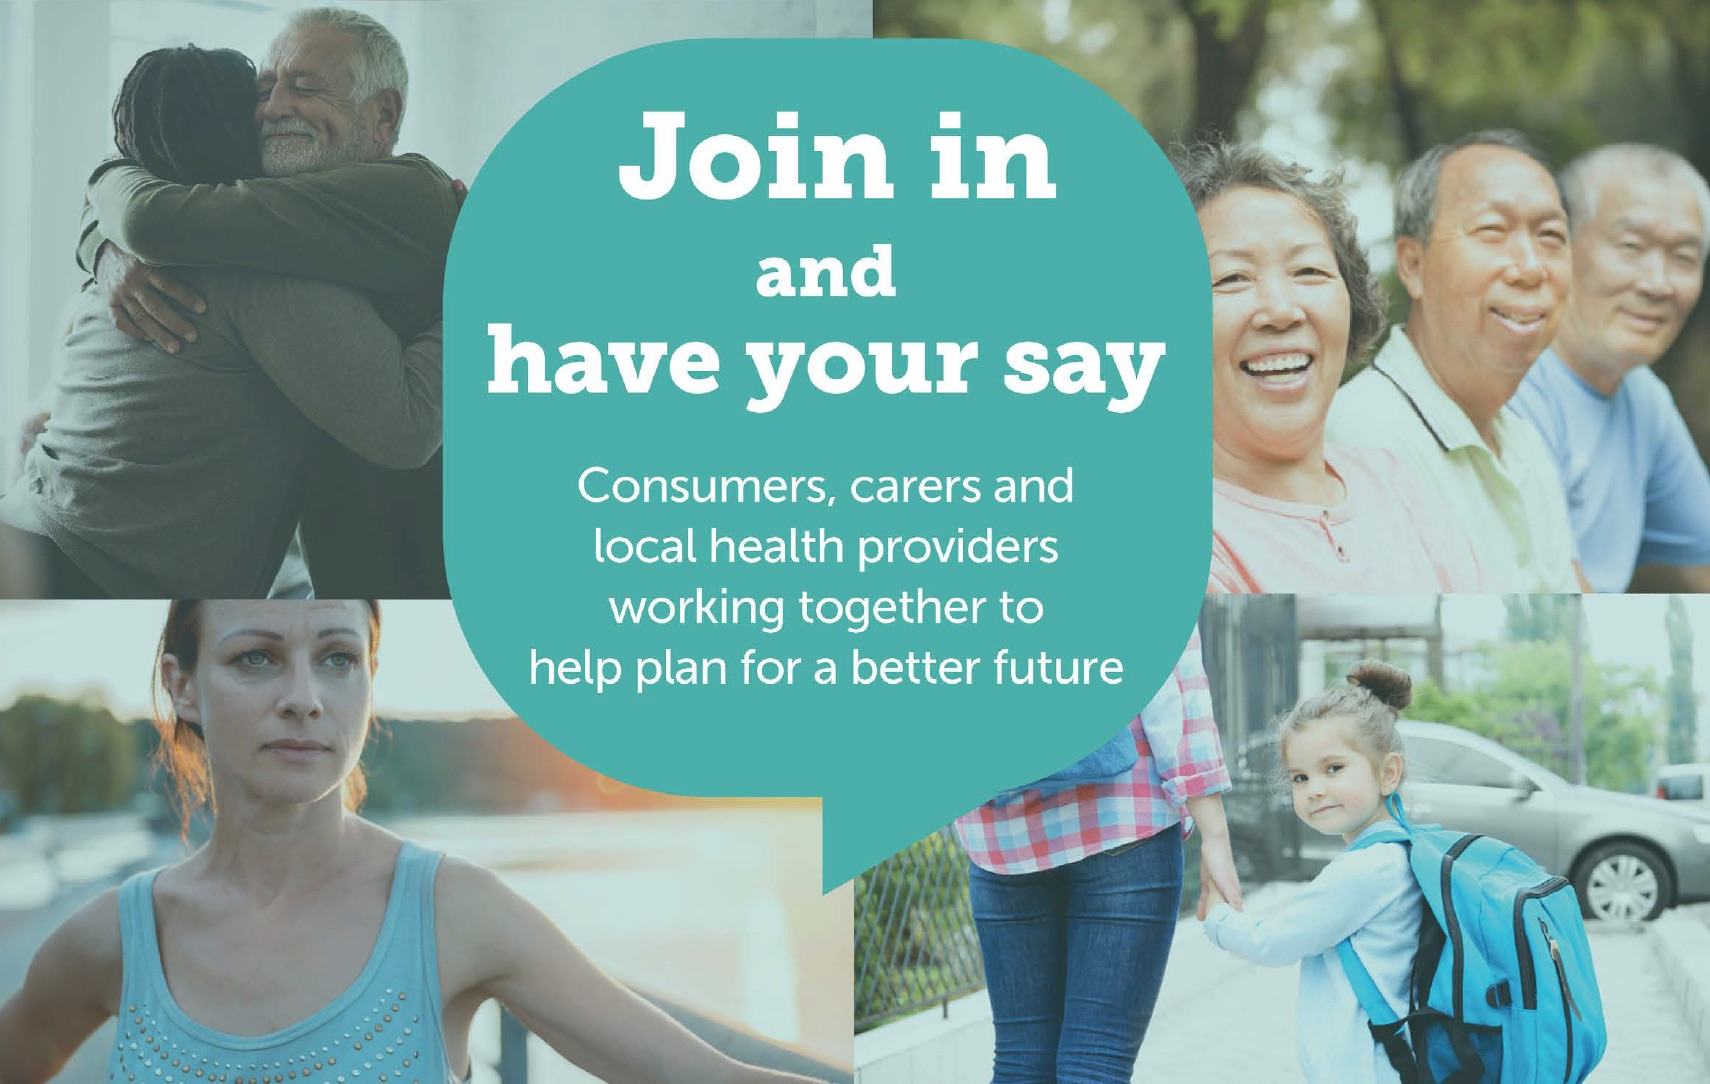 Promotional image with 'join in and have your say' text to promote mental health regional plan workshops.